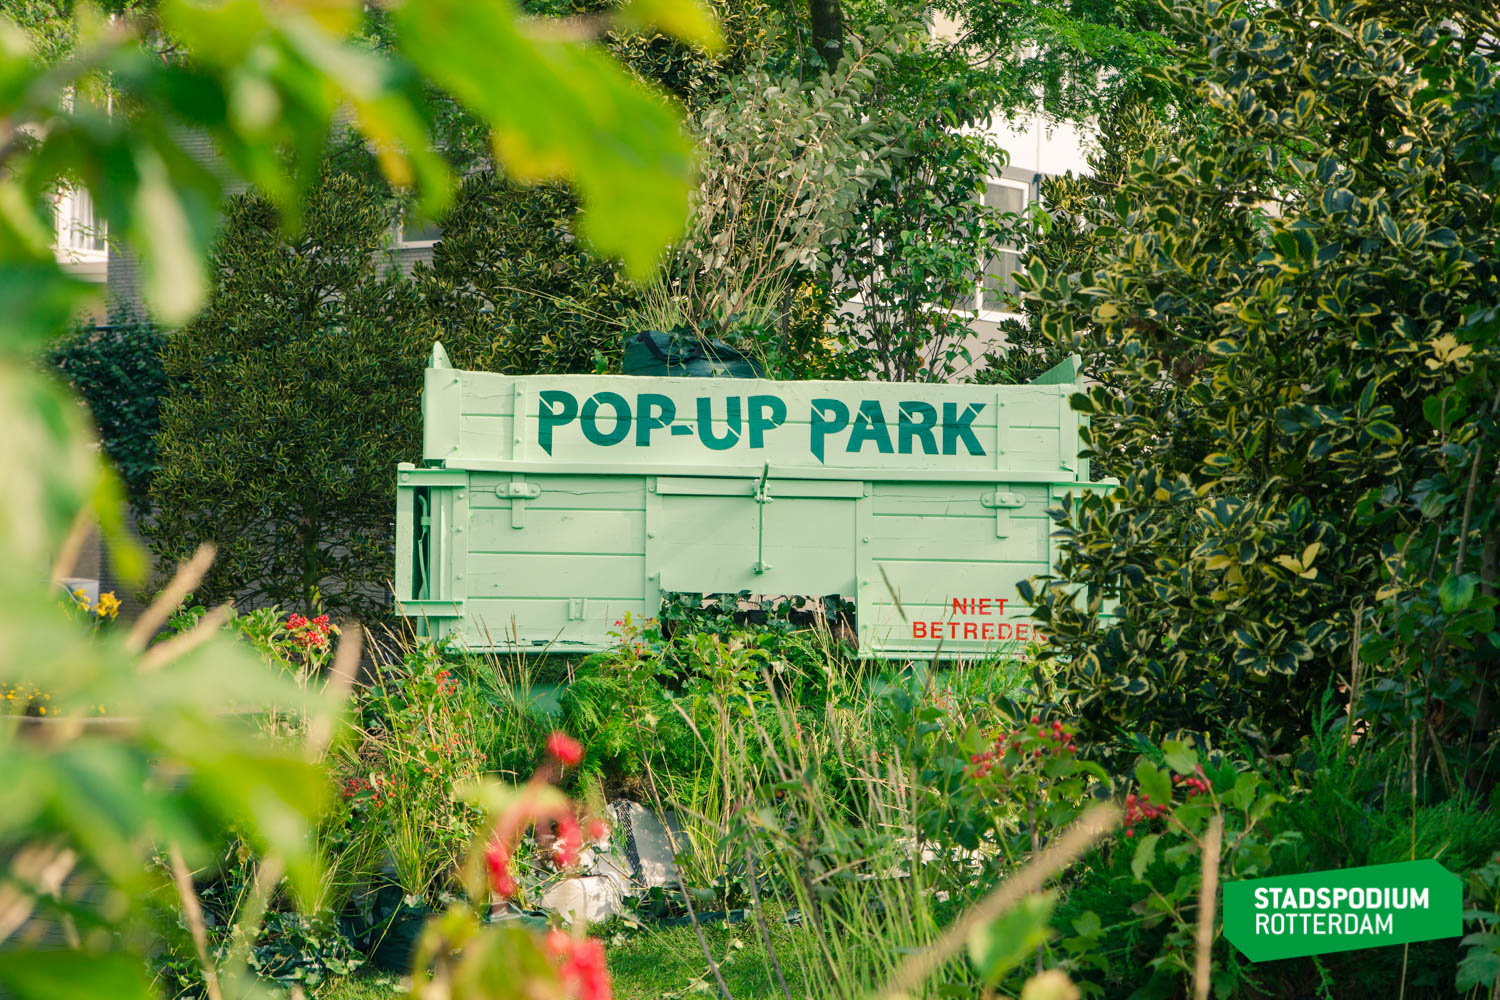 Pop Up Park Rotterdam, fotograaf Ijzerman Media